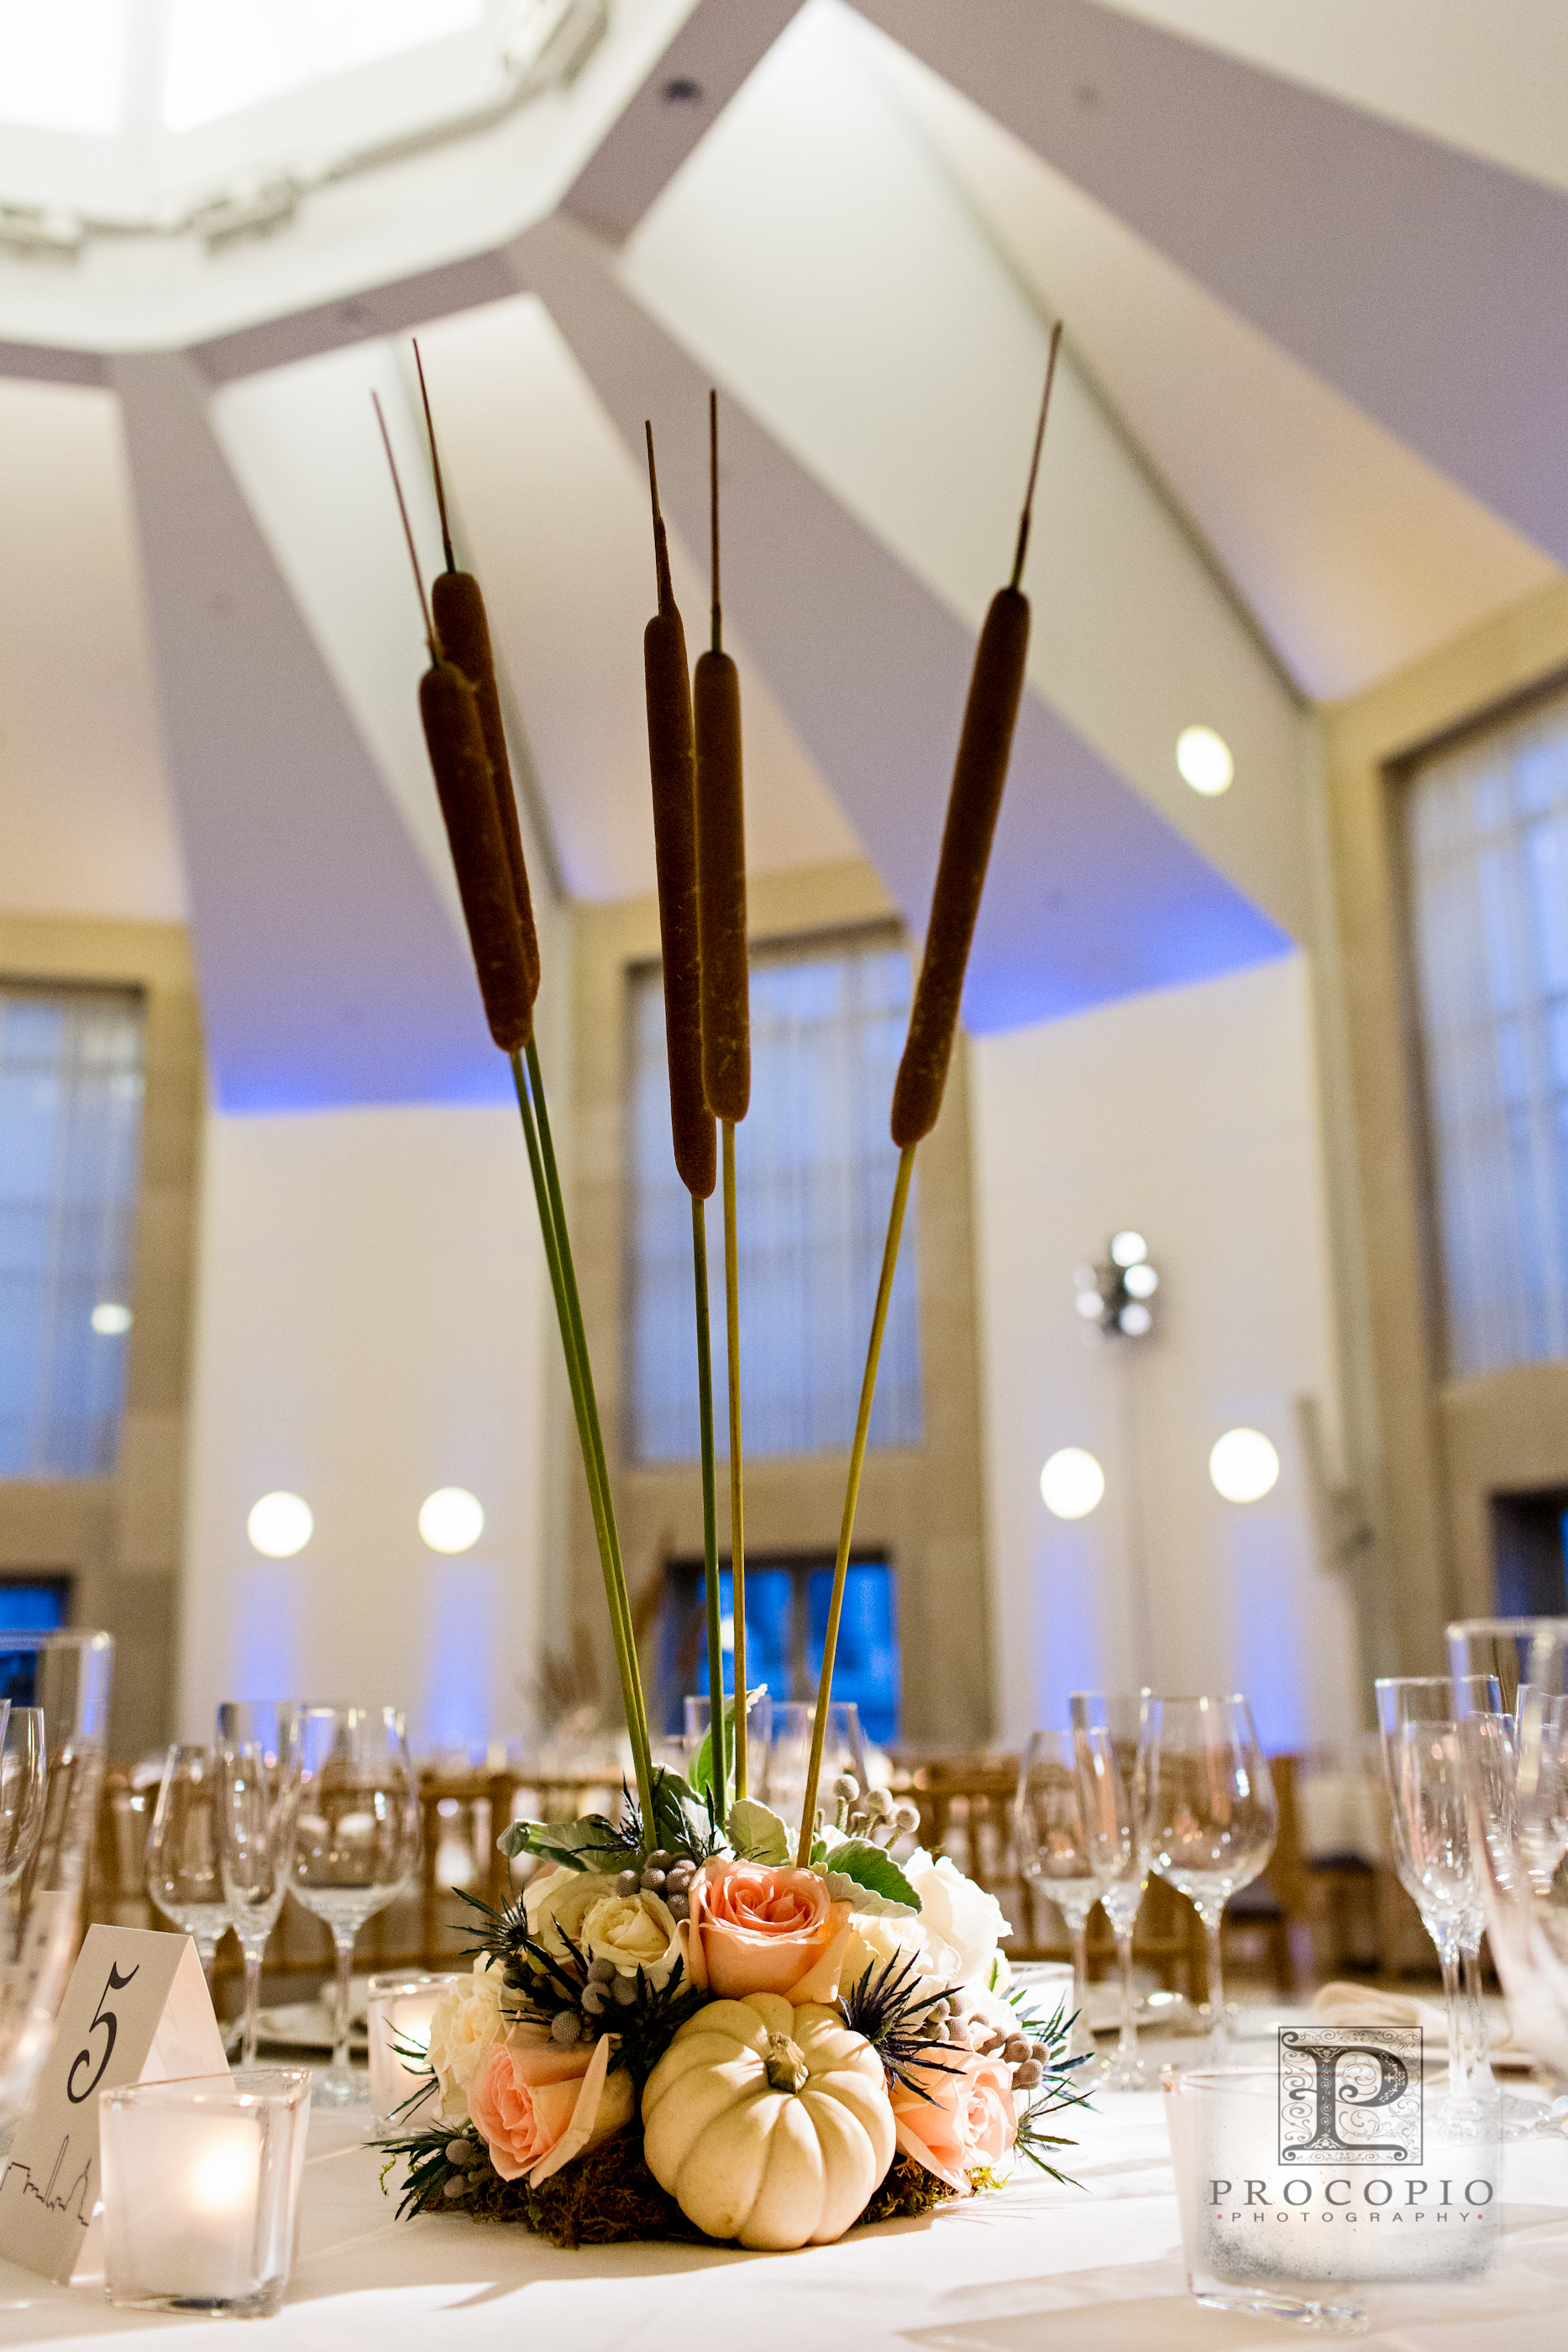 Custom designed centerpieces incorporated the pumpkins, cattails and pussy willow